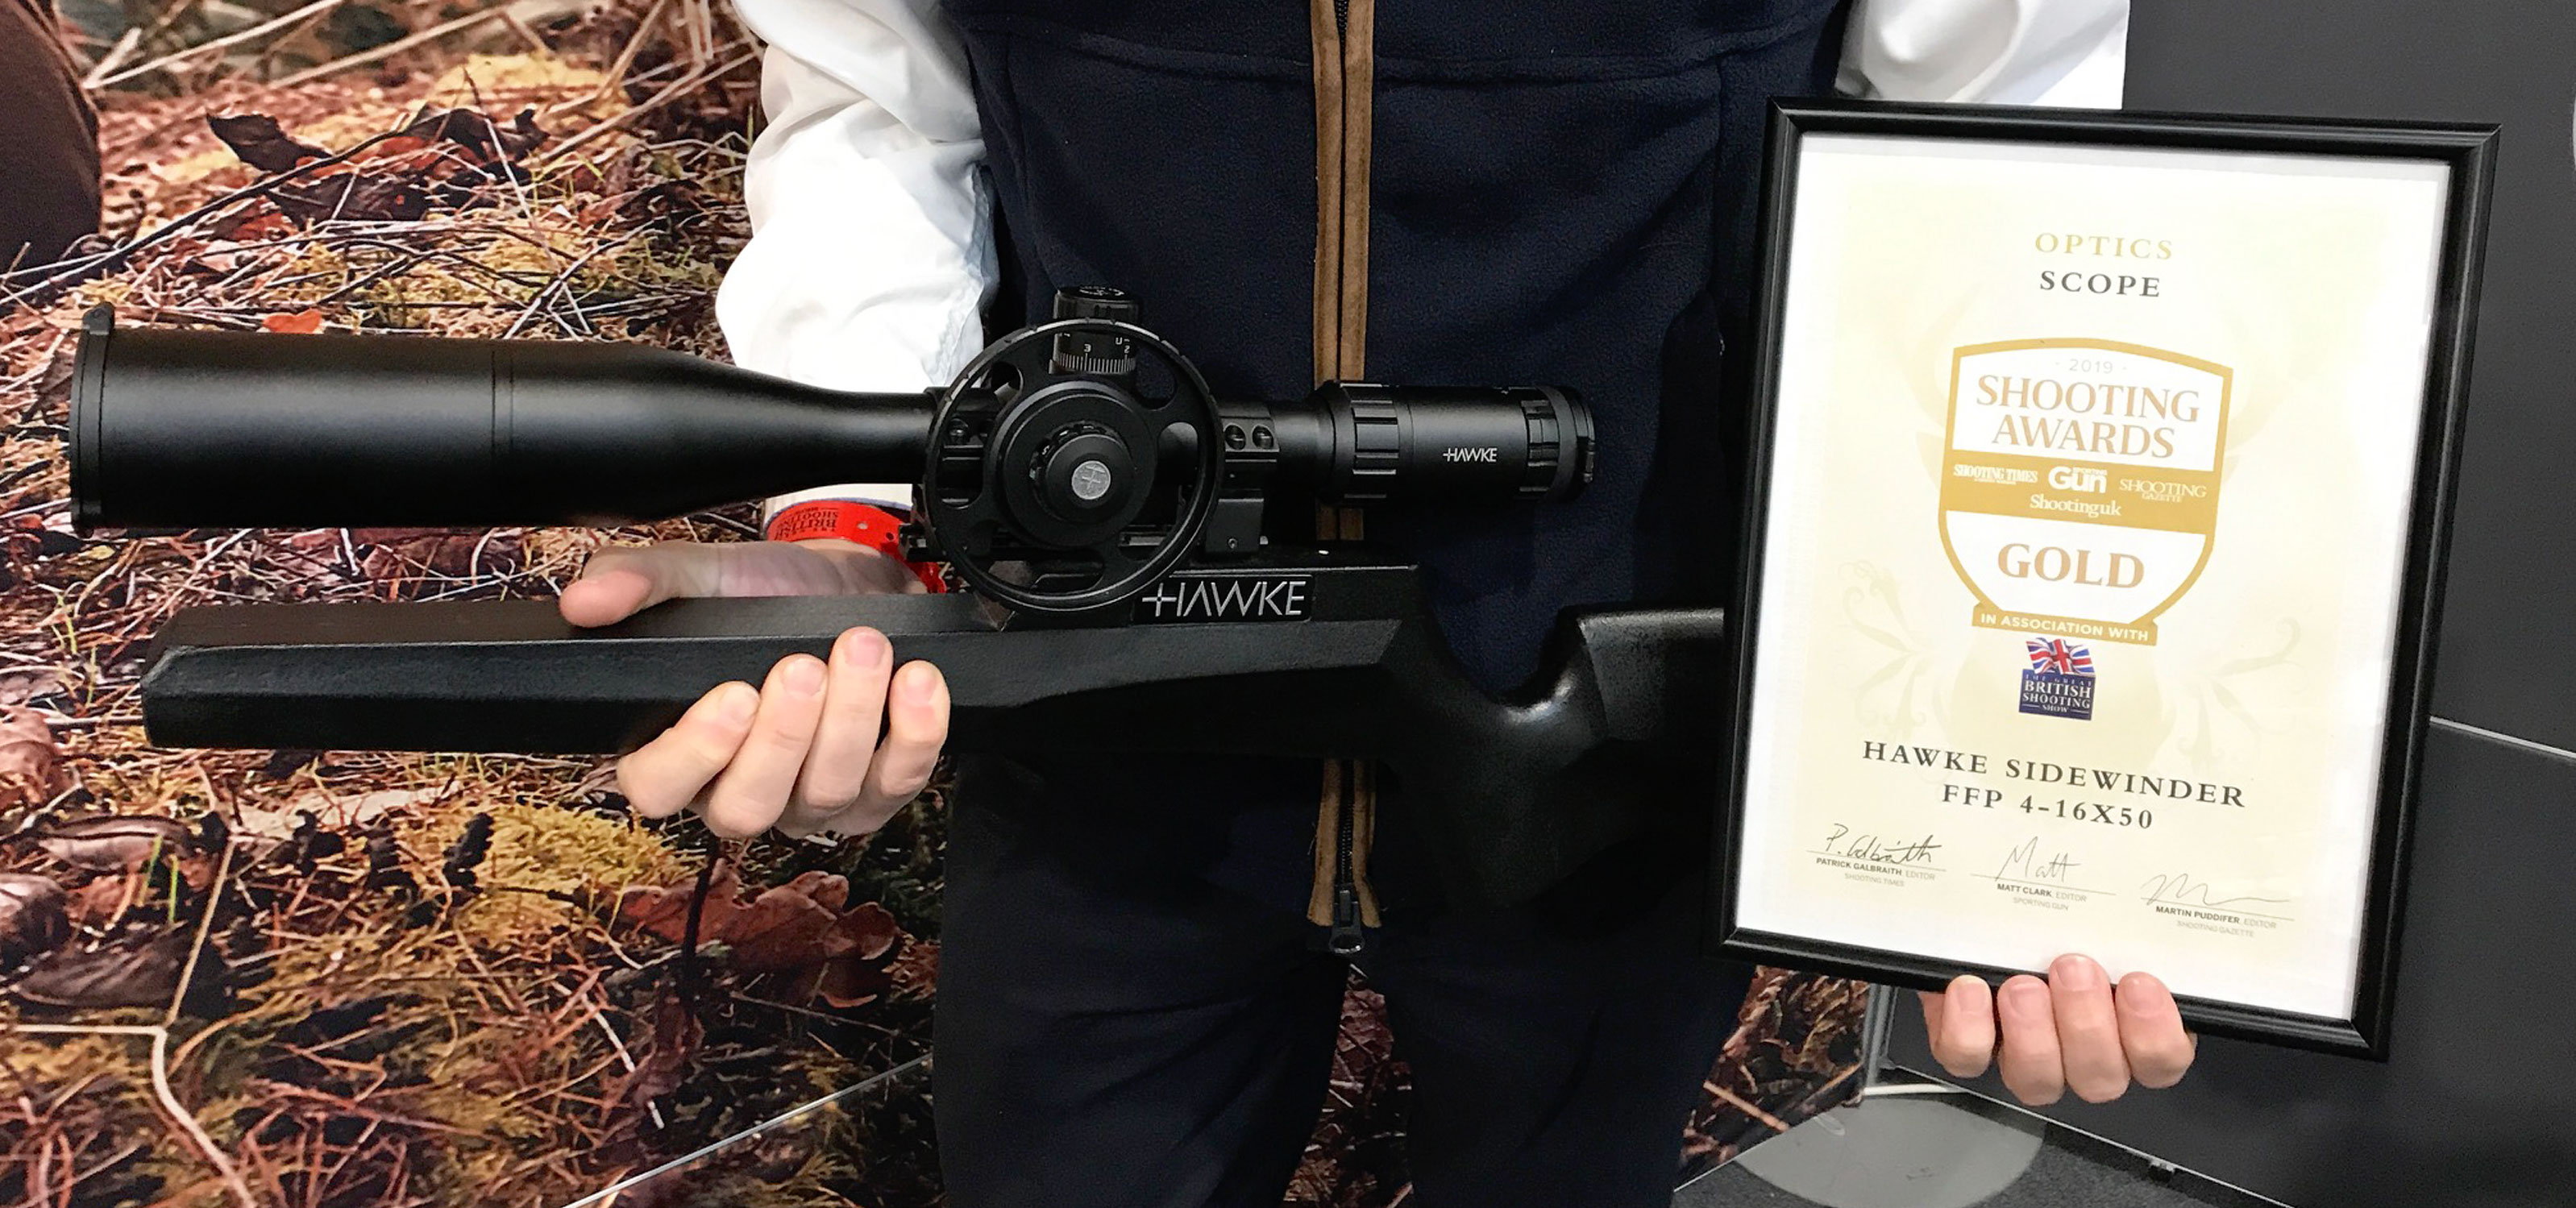 2019 Shooting Awards Hawke Sidewinder FFP